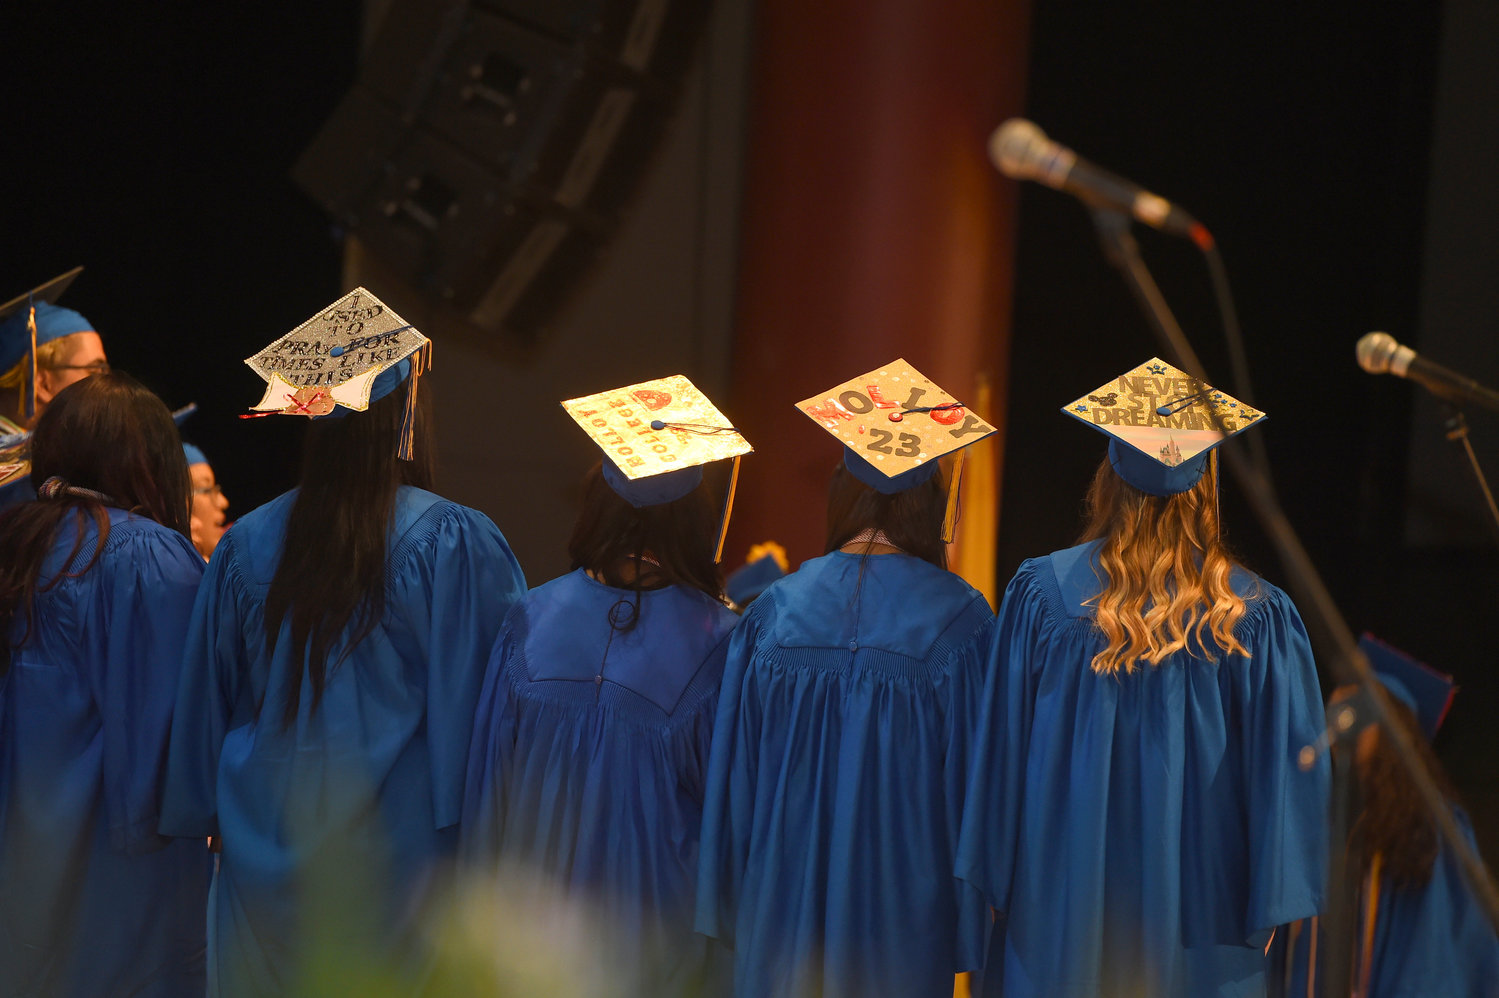 Lawrence High School seniors creatively illustrated their sentiments as they graduated on June 24.